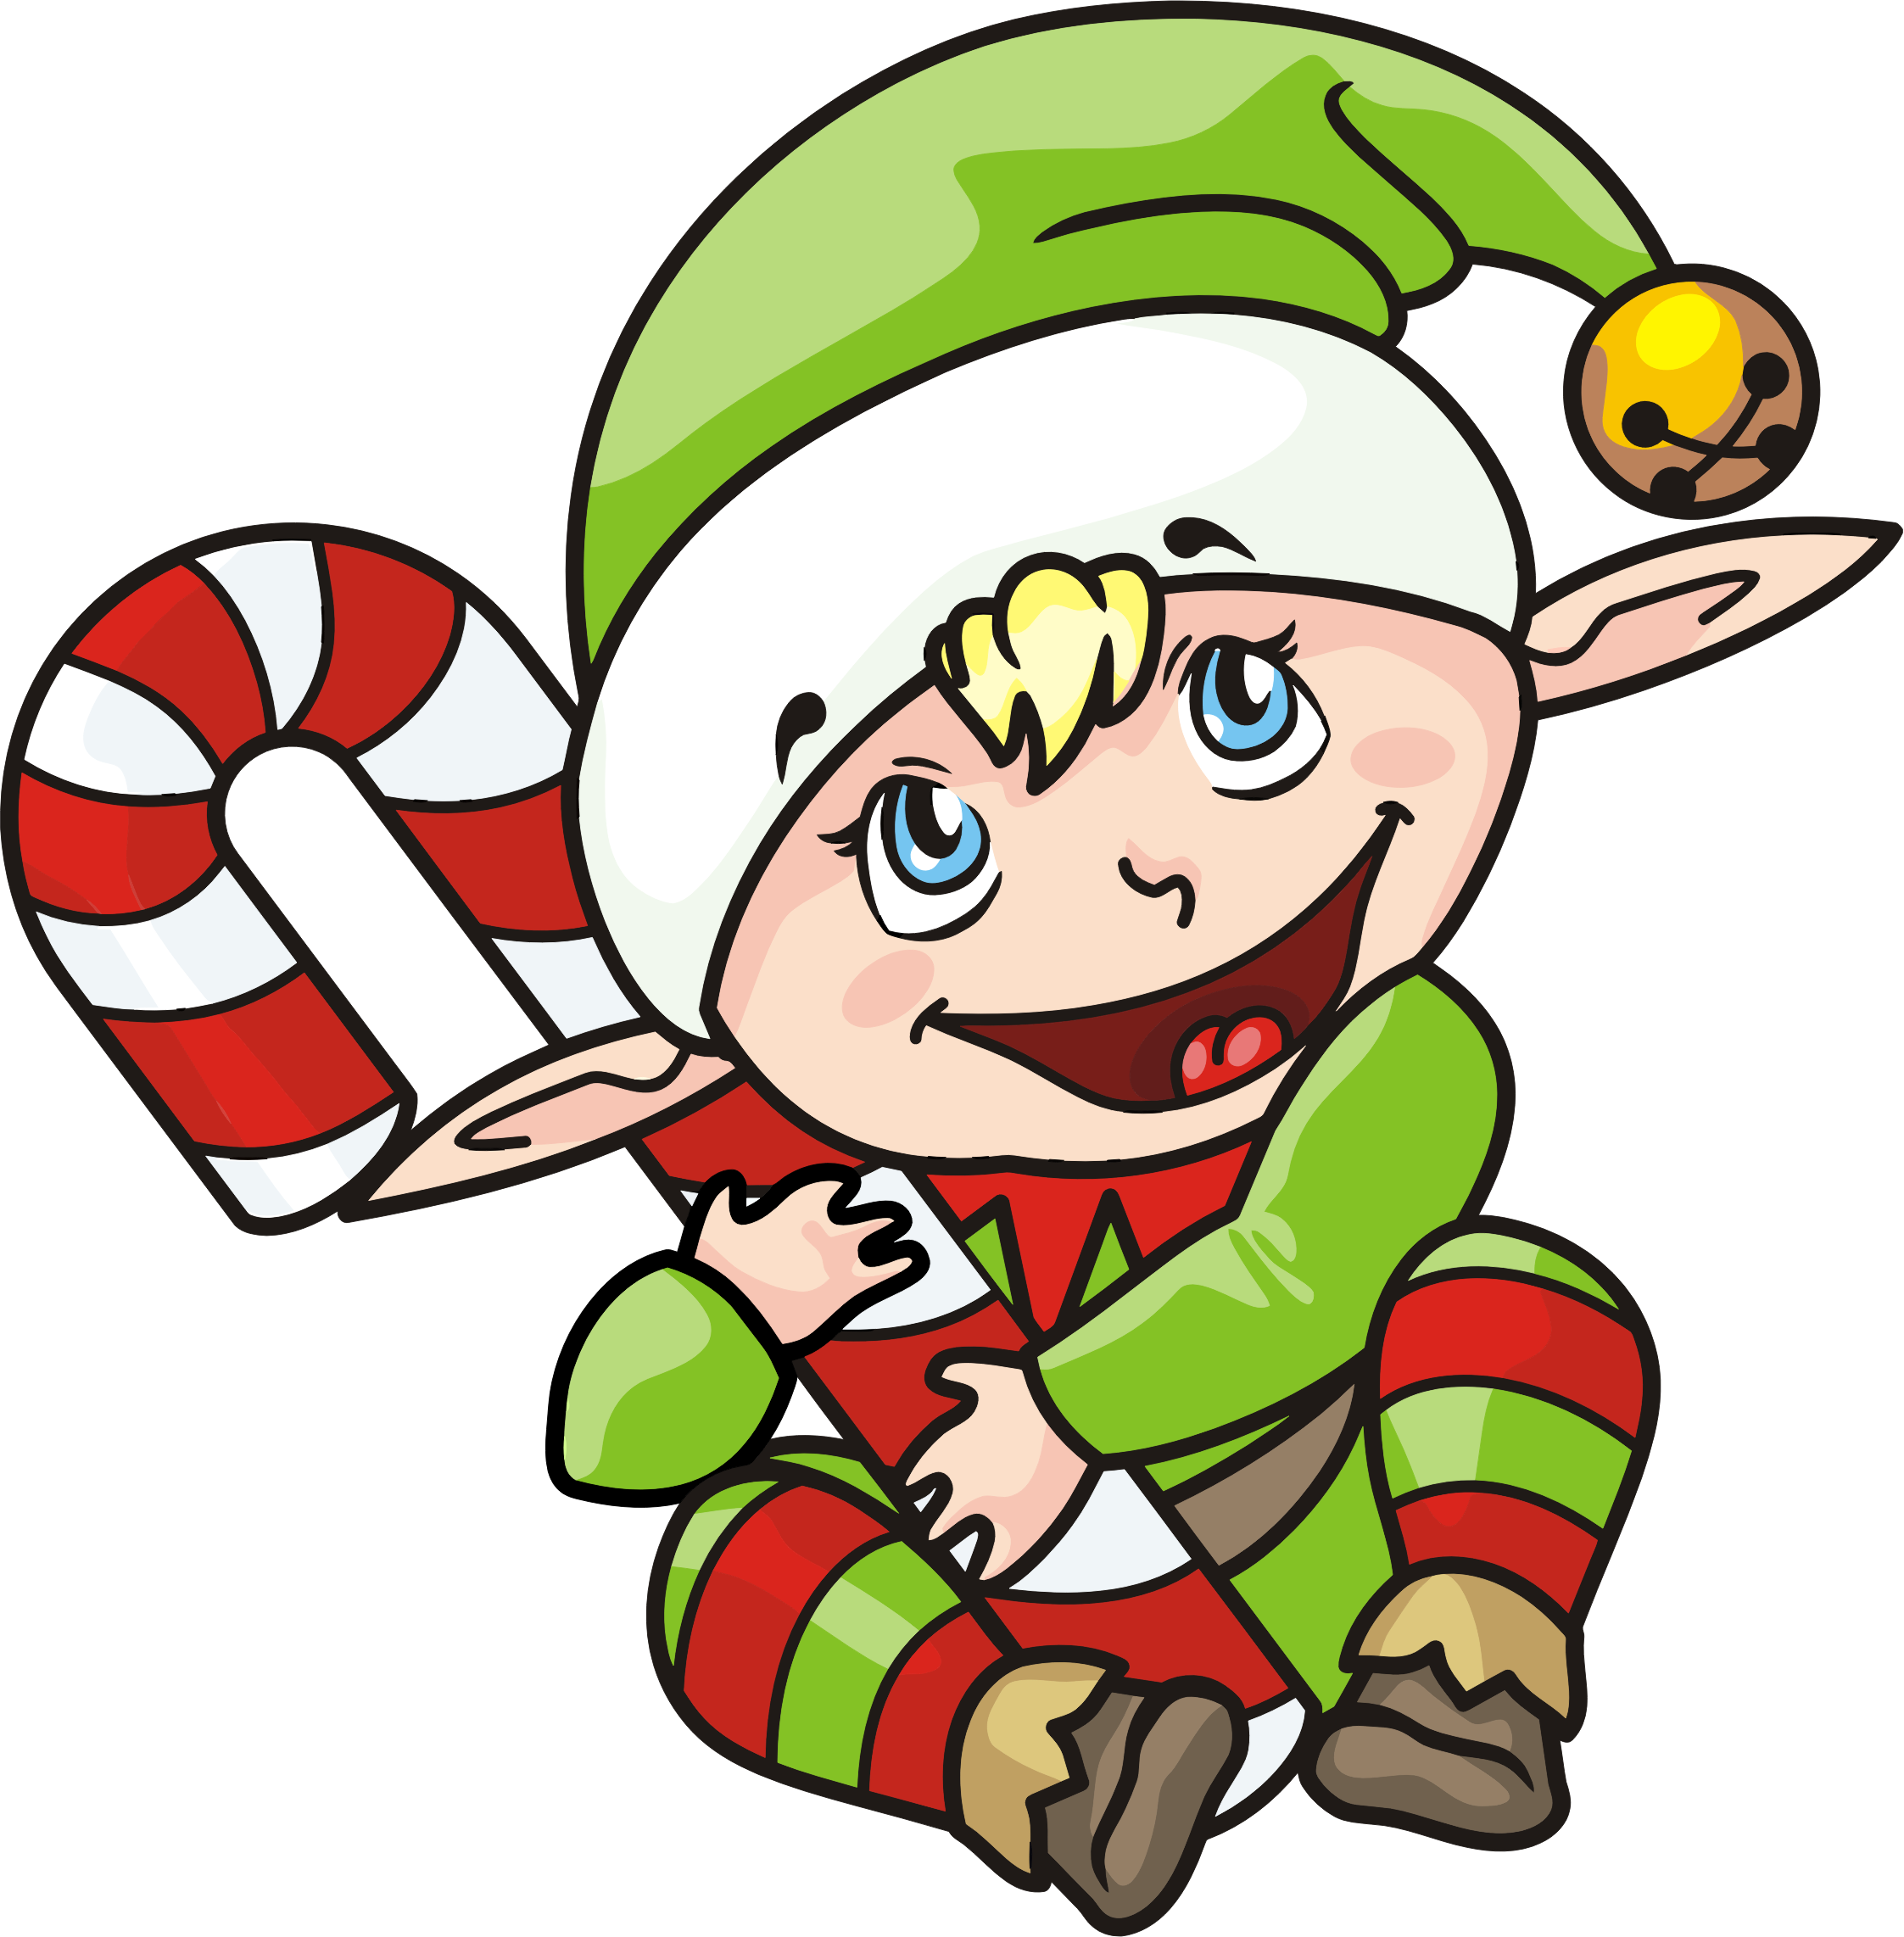 Clipart christmas elf graphic download Clipart - Christmas Elf graphic download